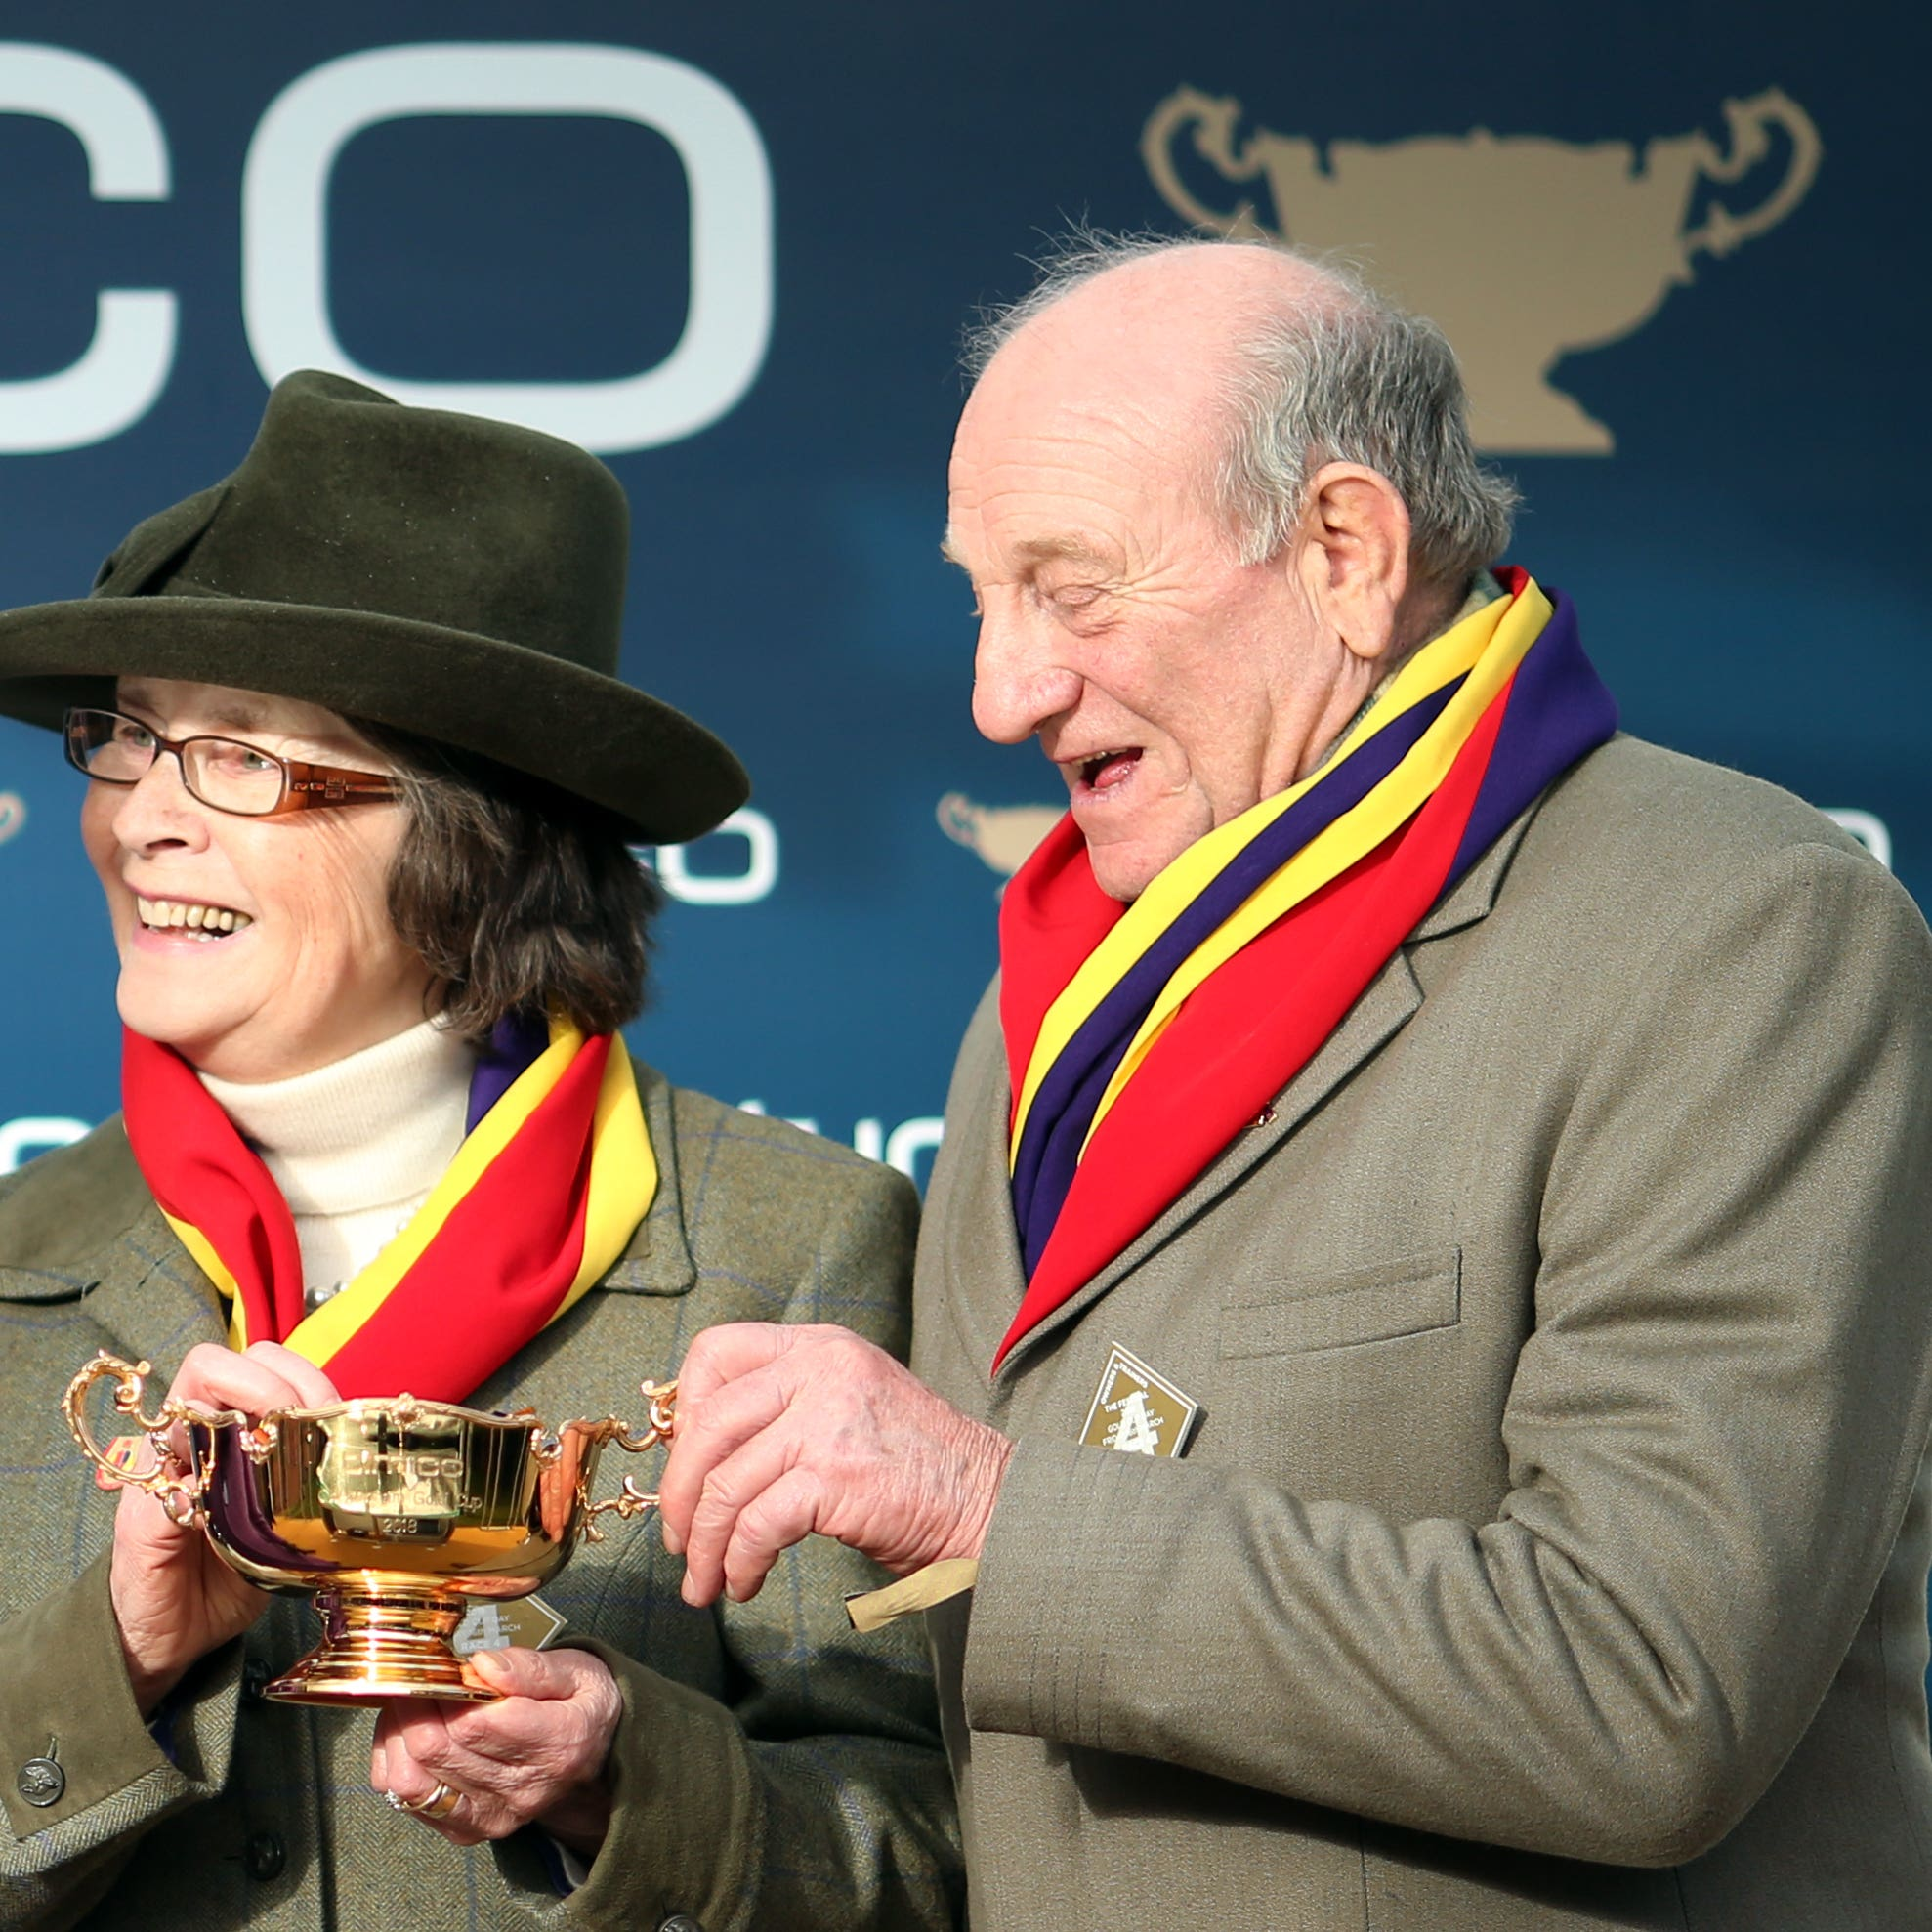 Garth Broom (right) being presented with the Cheltenham Gold Cup by Princess Anne